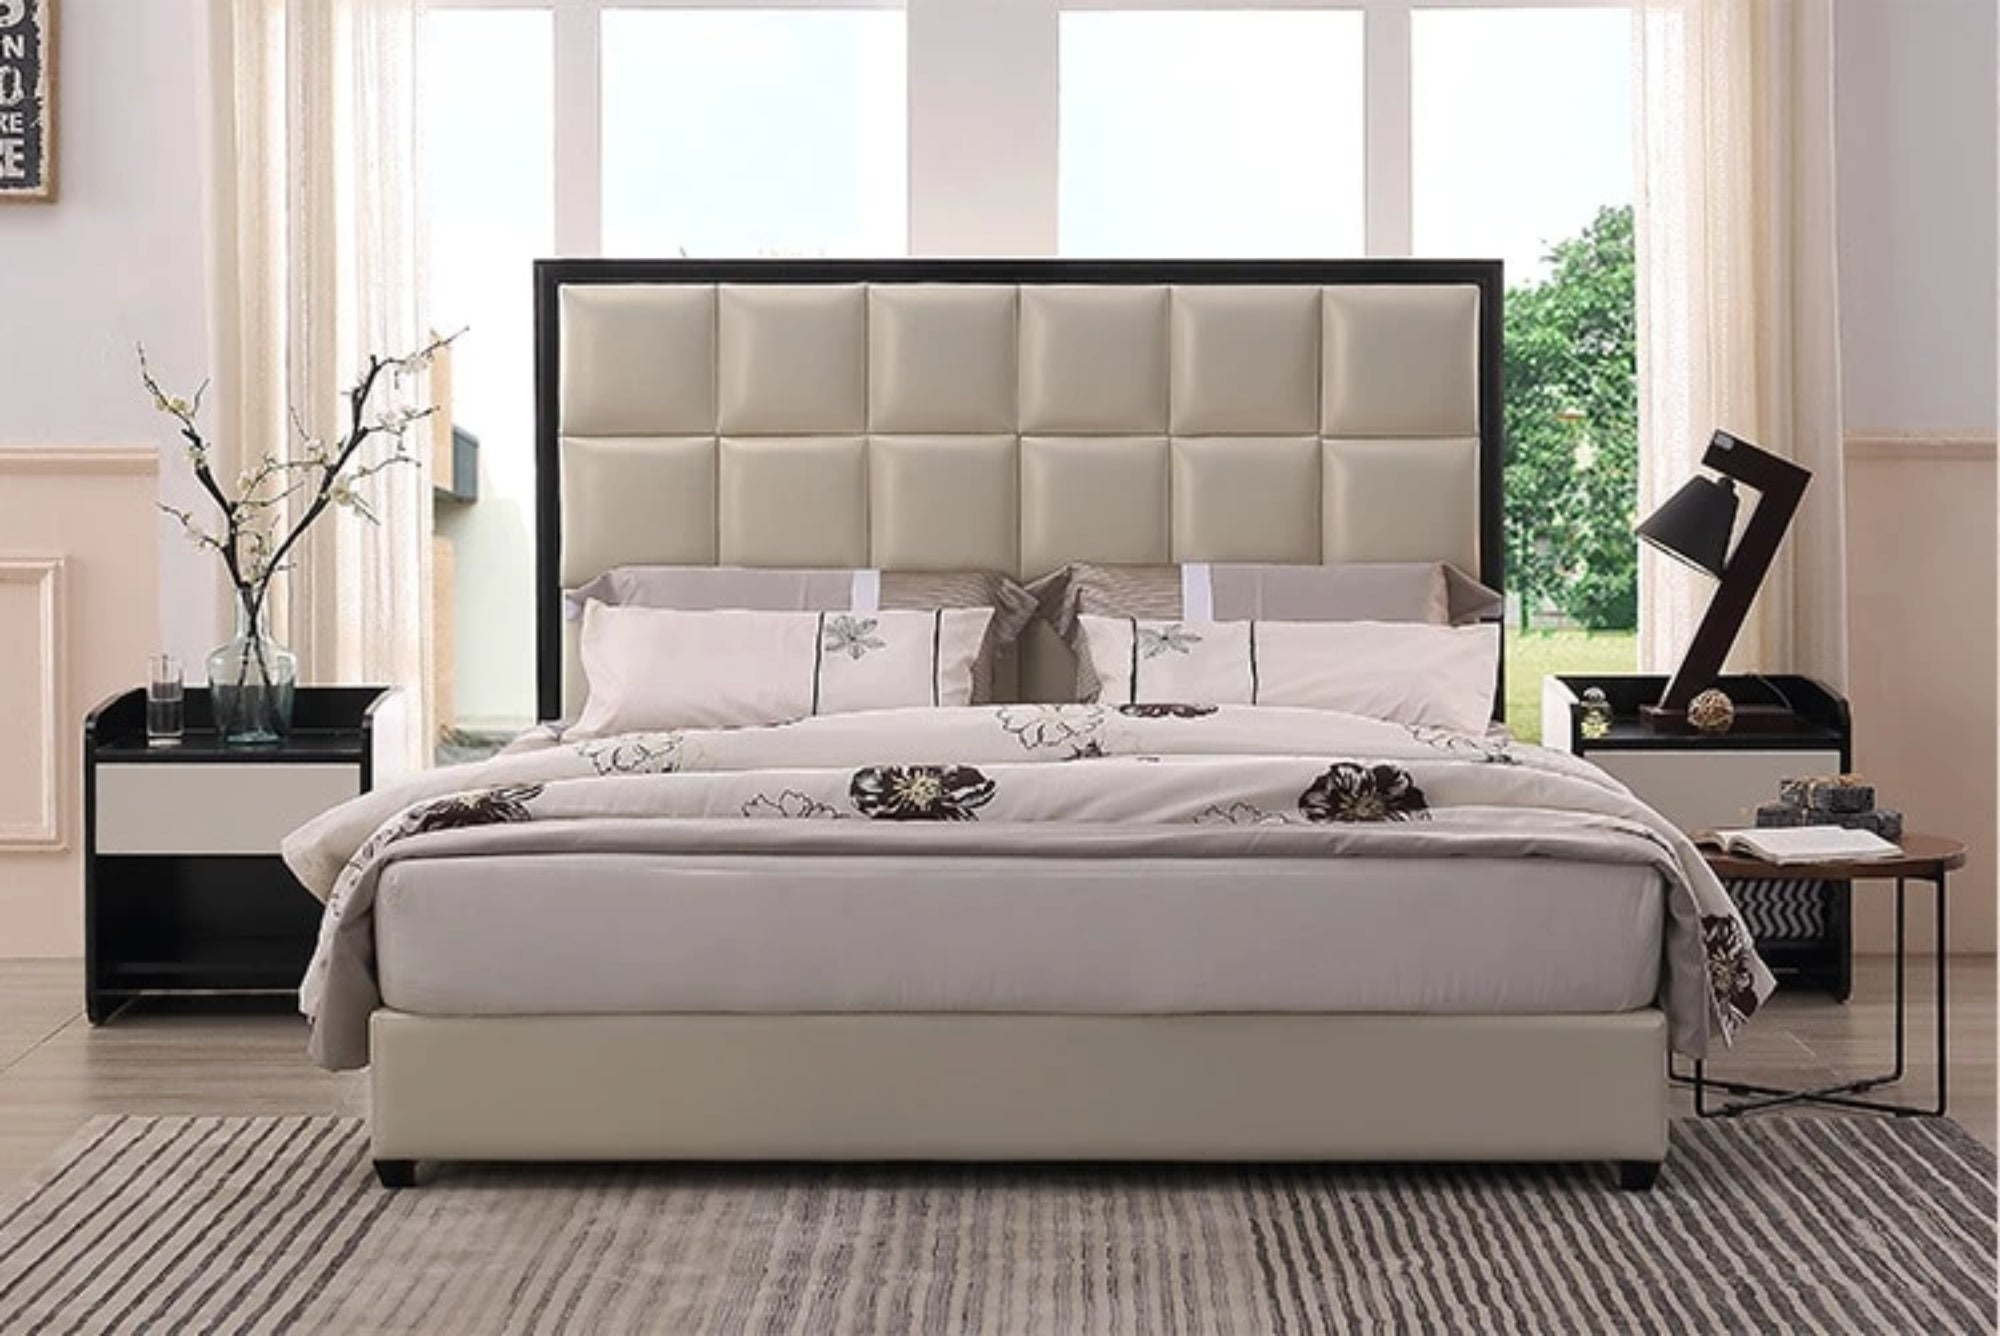 Modern Styles Genuine Leather Soft Bed For Home Or Hotel Furniture My Aashis